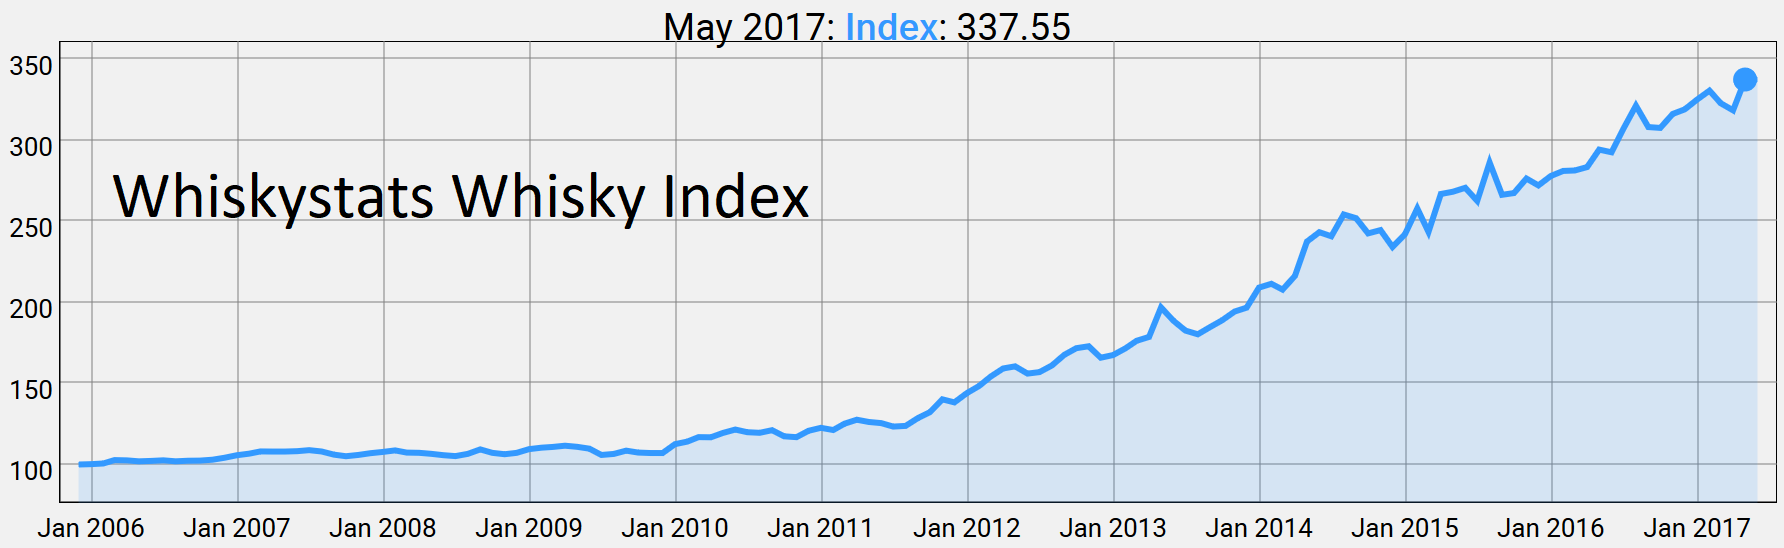 Whiskystats Whisky Index by May 2017